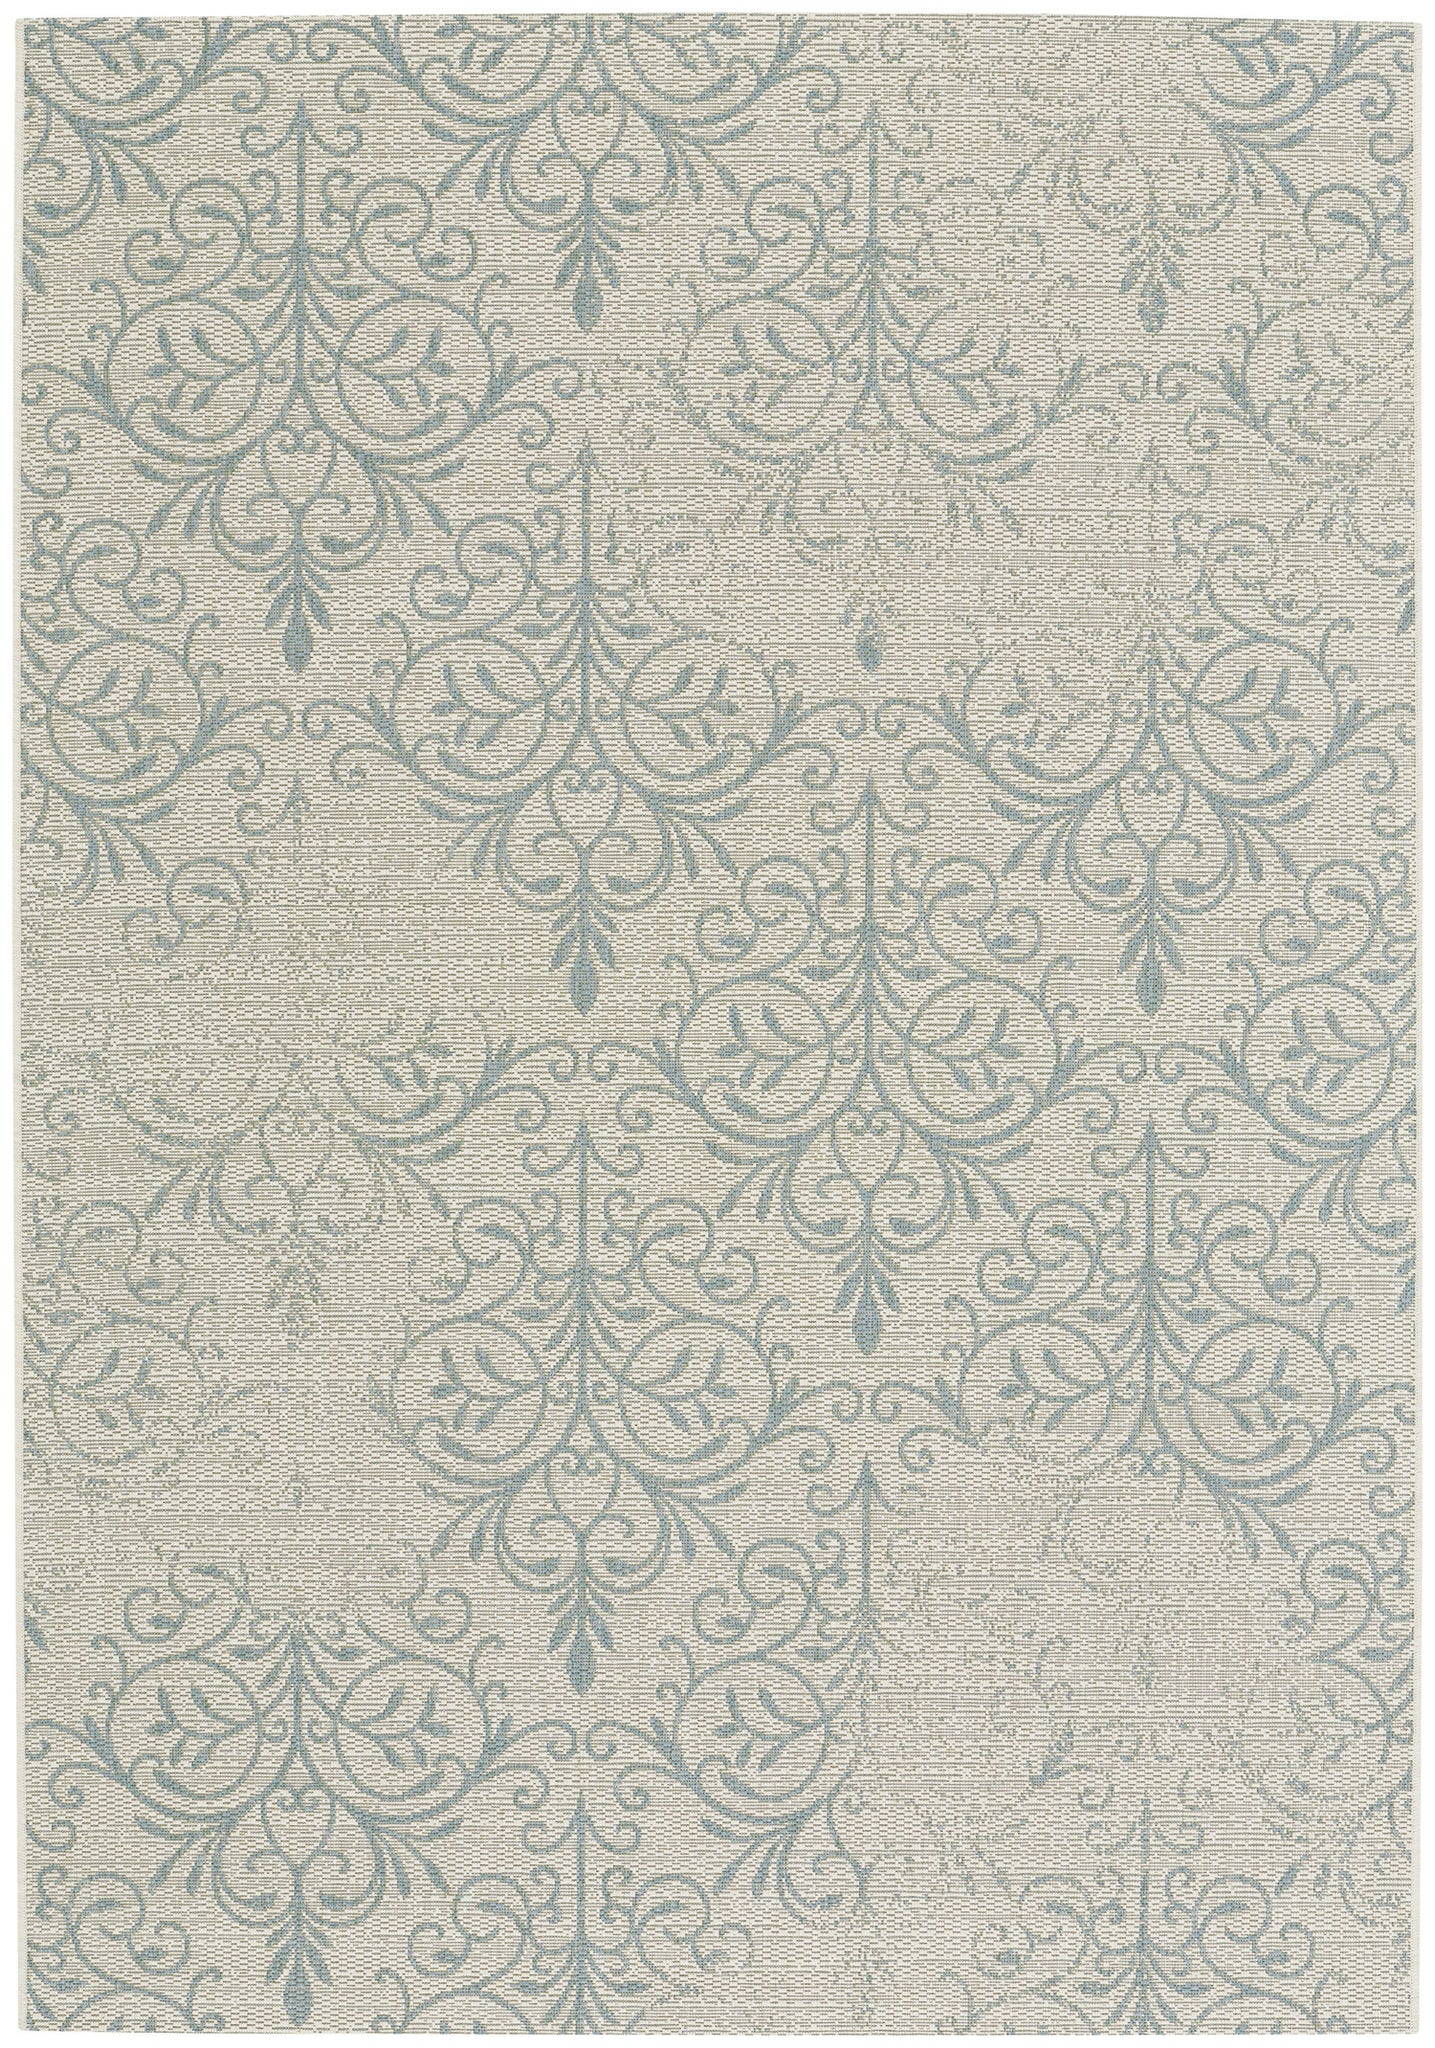 Capel Elsinore Heirloom 4736 Blue 420 Area Rug main image